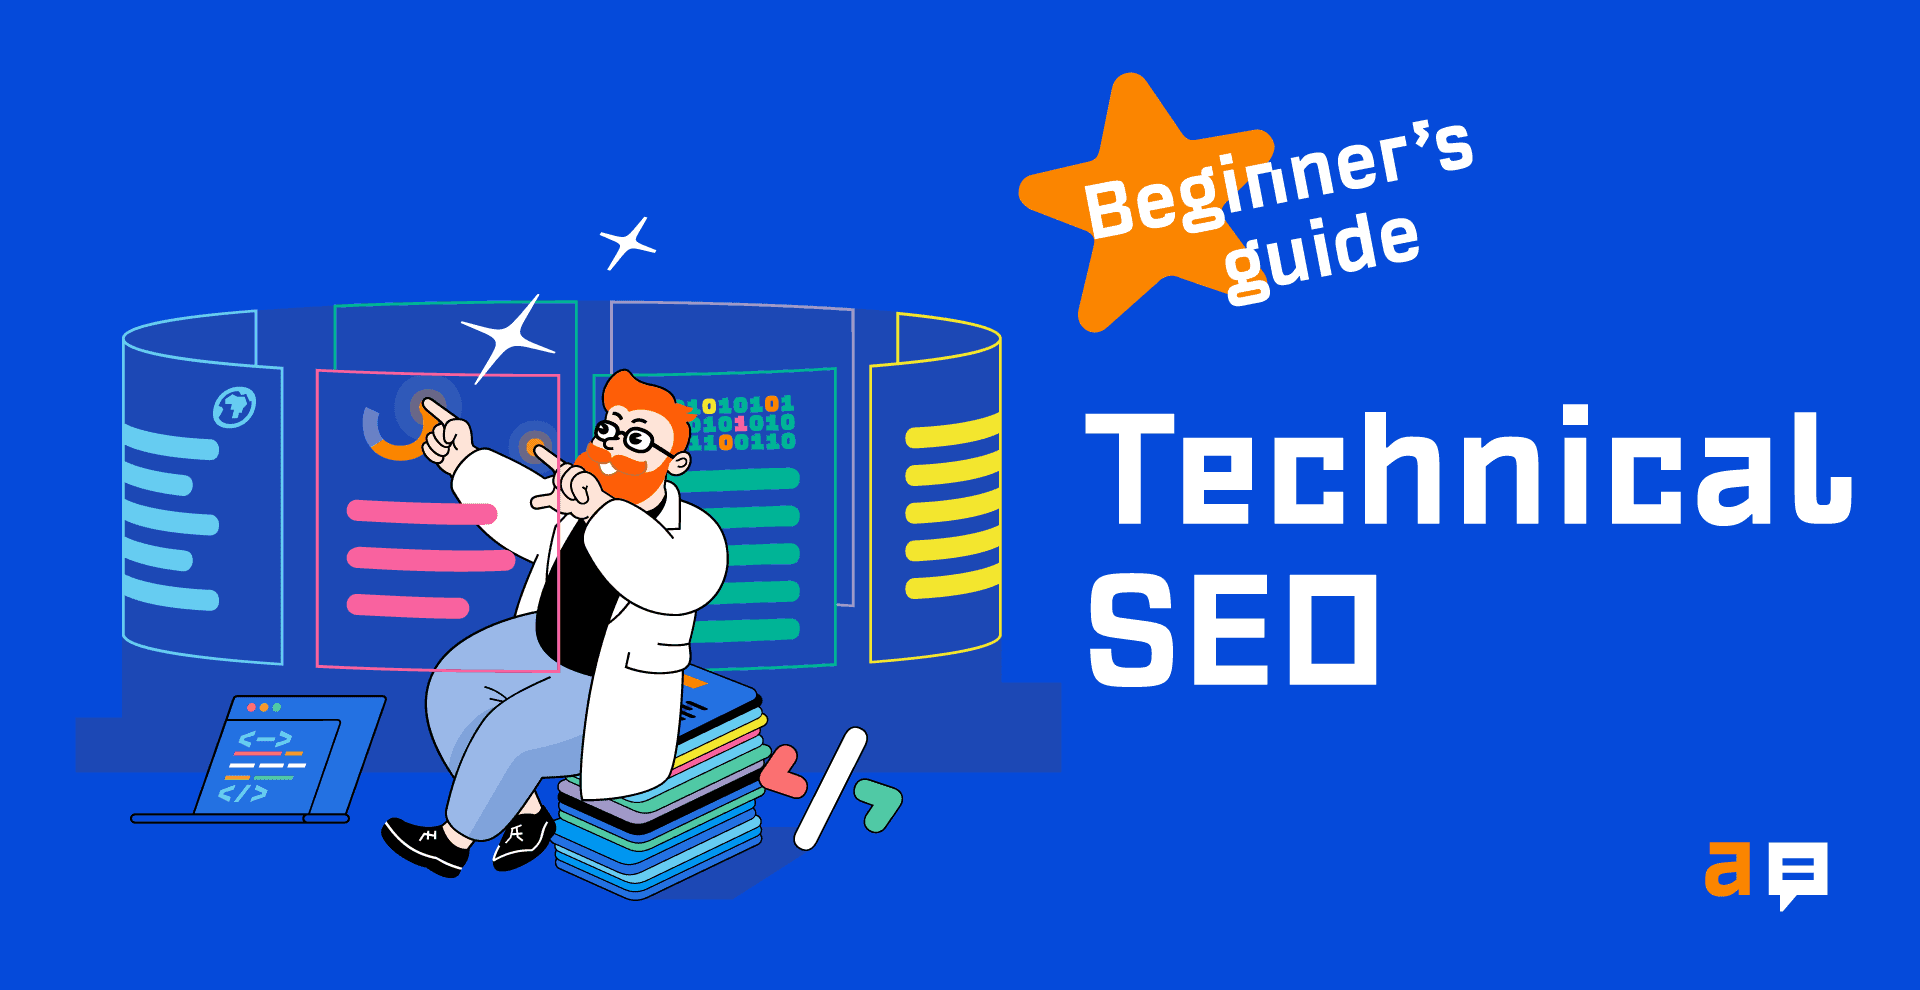 The Beginner's Guide to Technical SEO